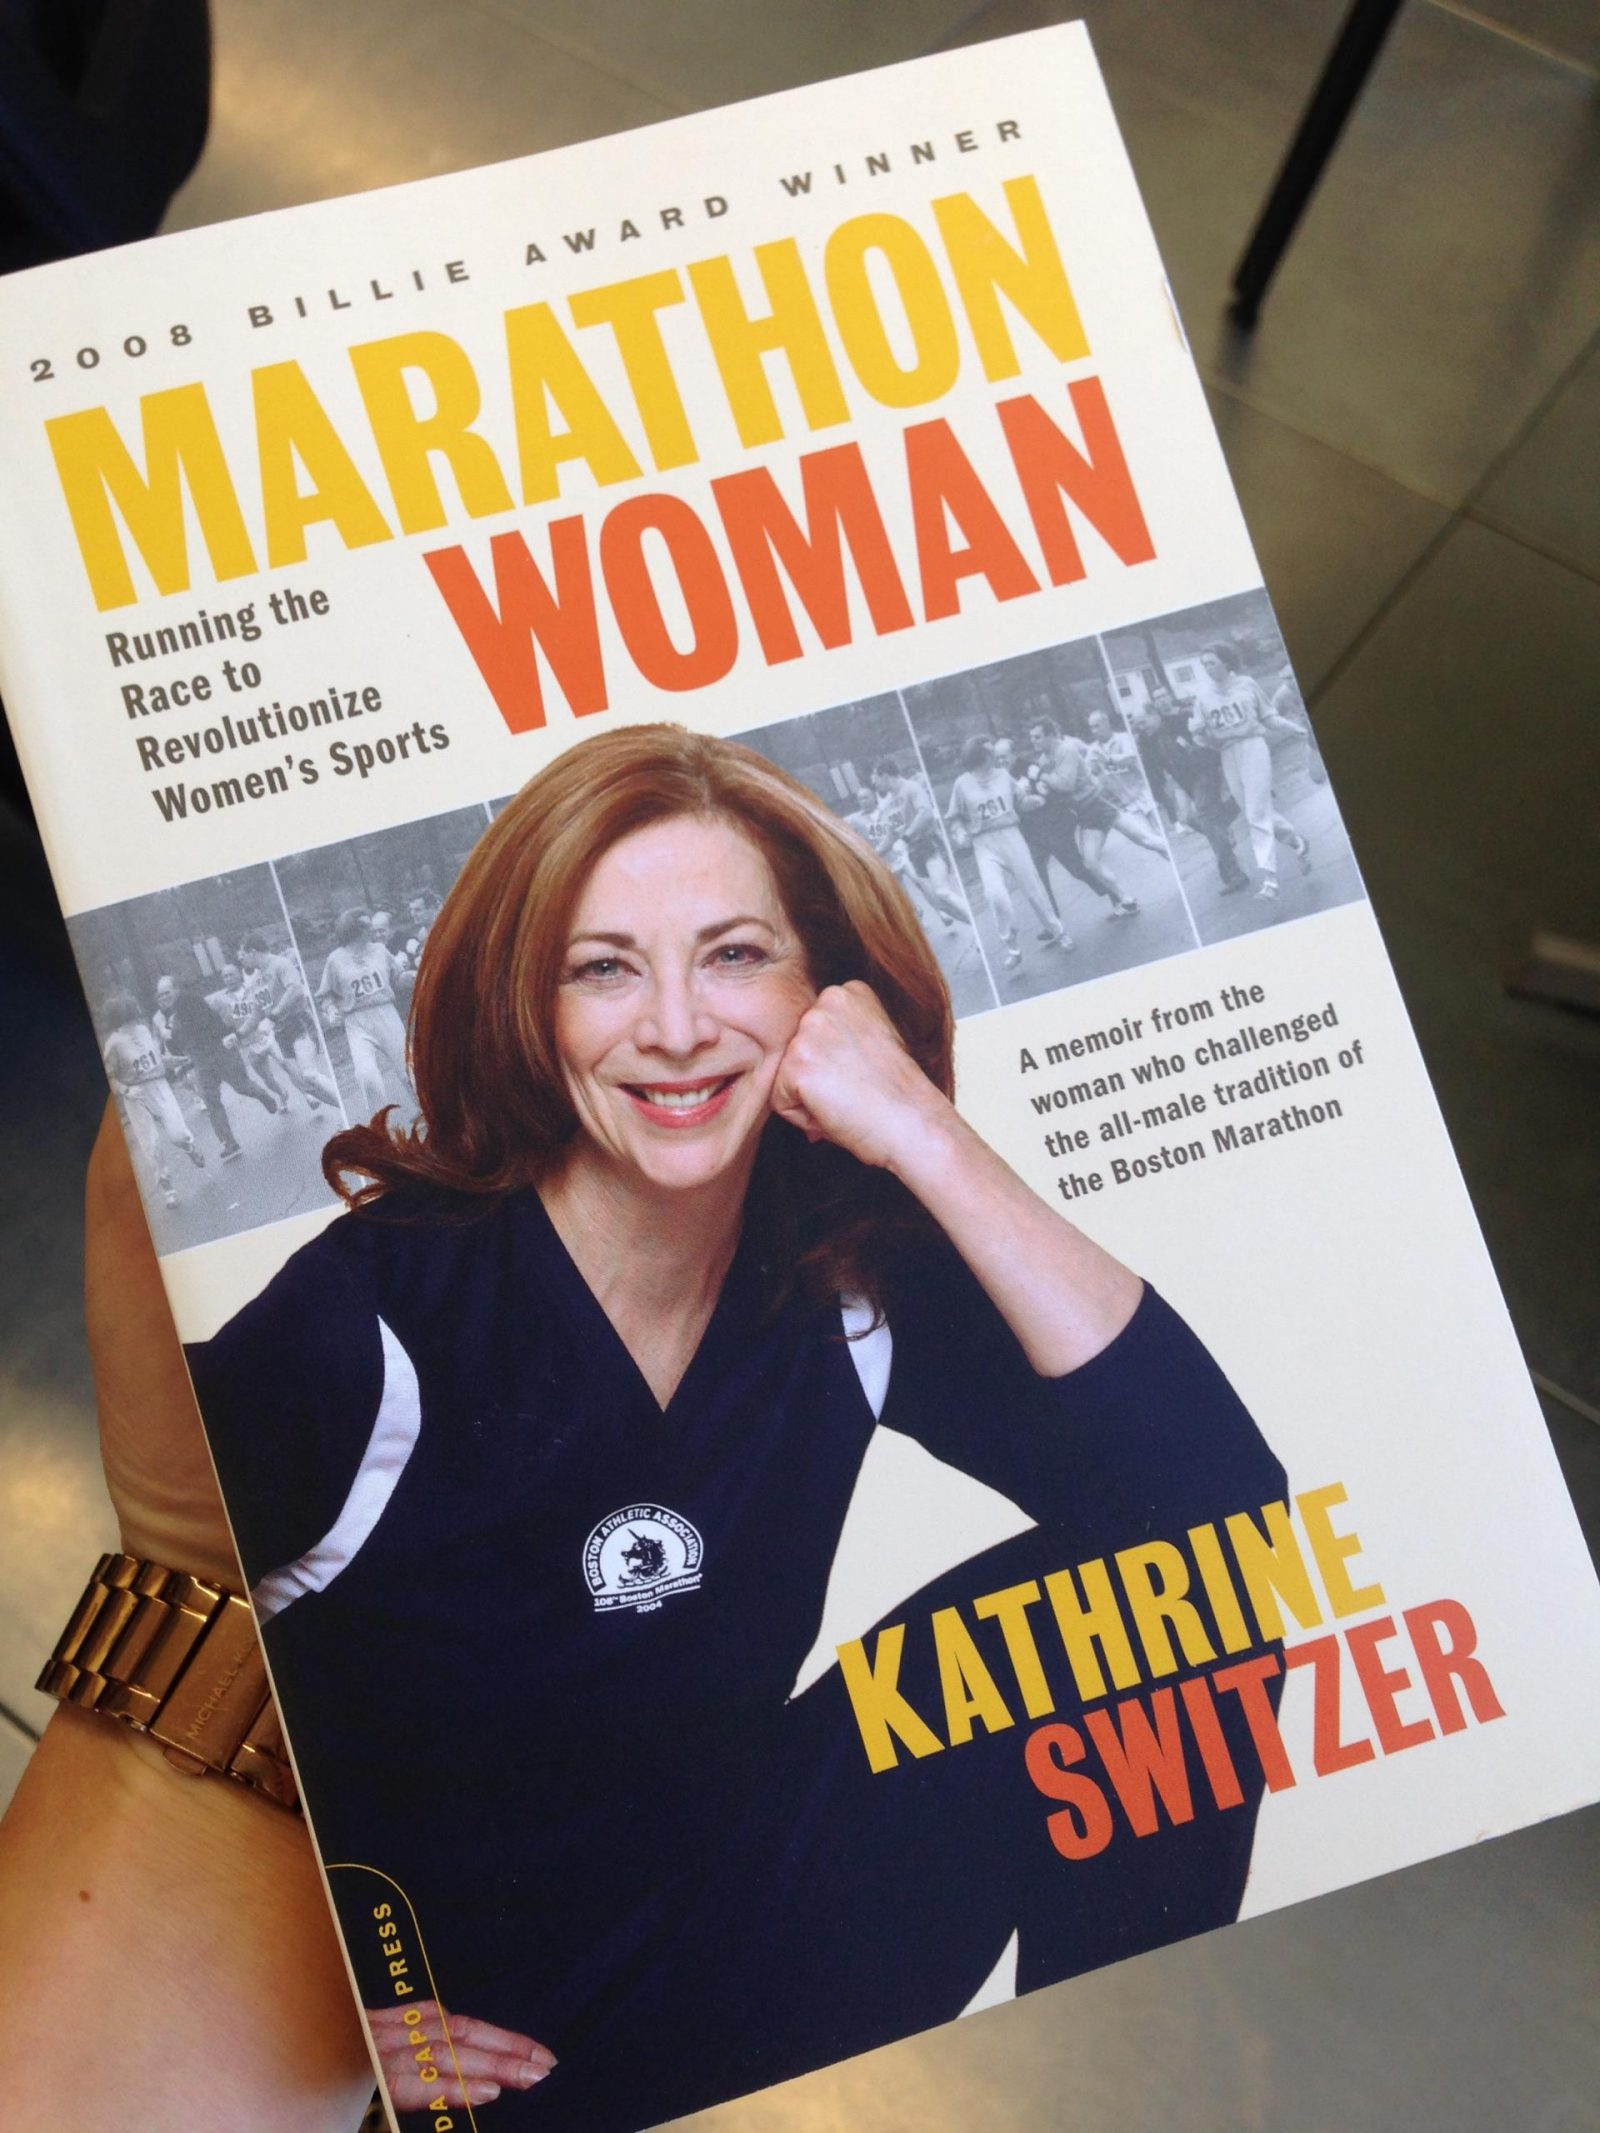 Marathon woman book turned